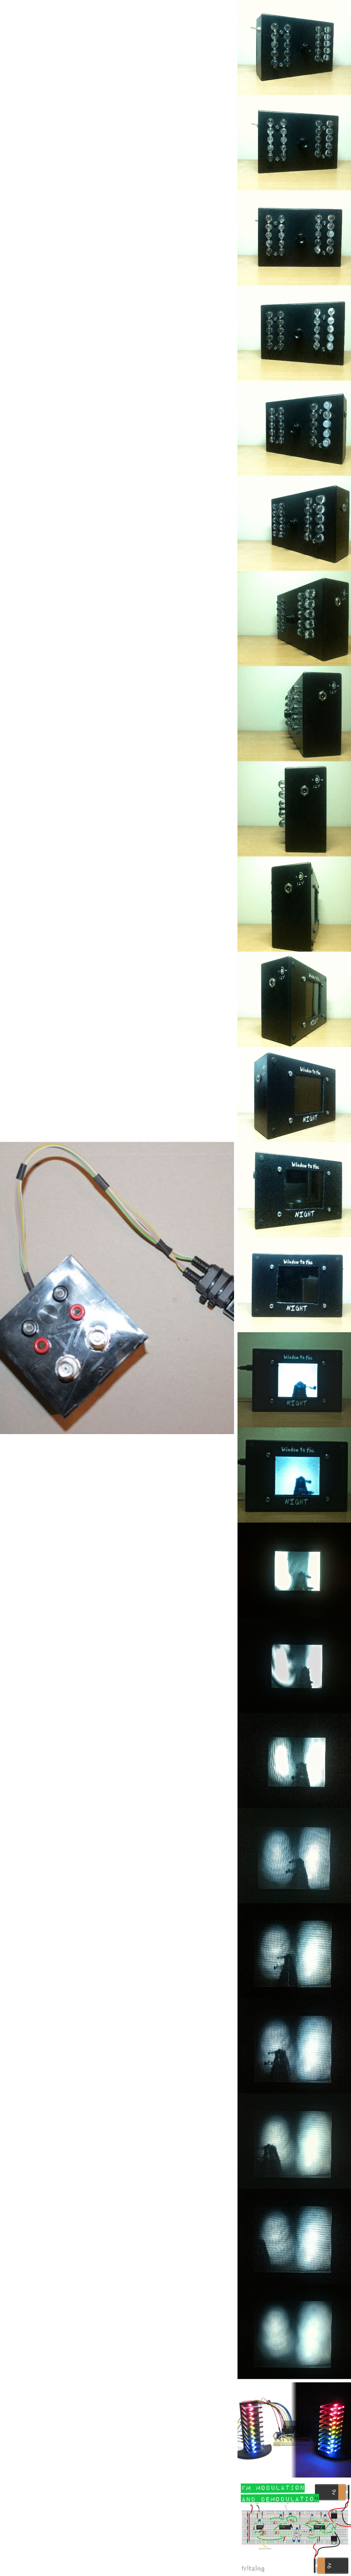 Projects for Electronics Lovers